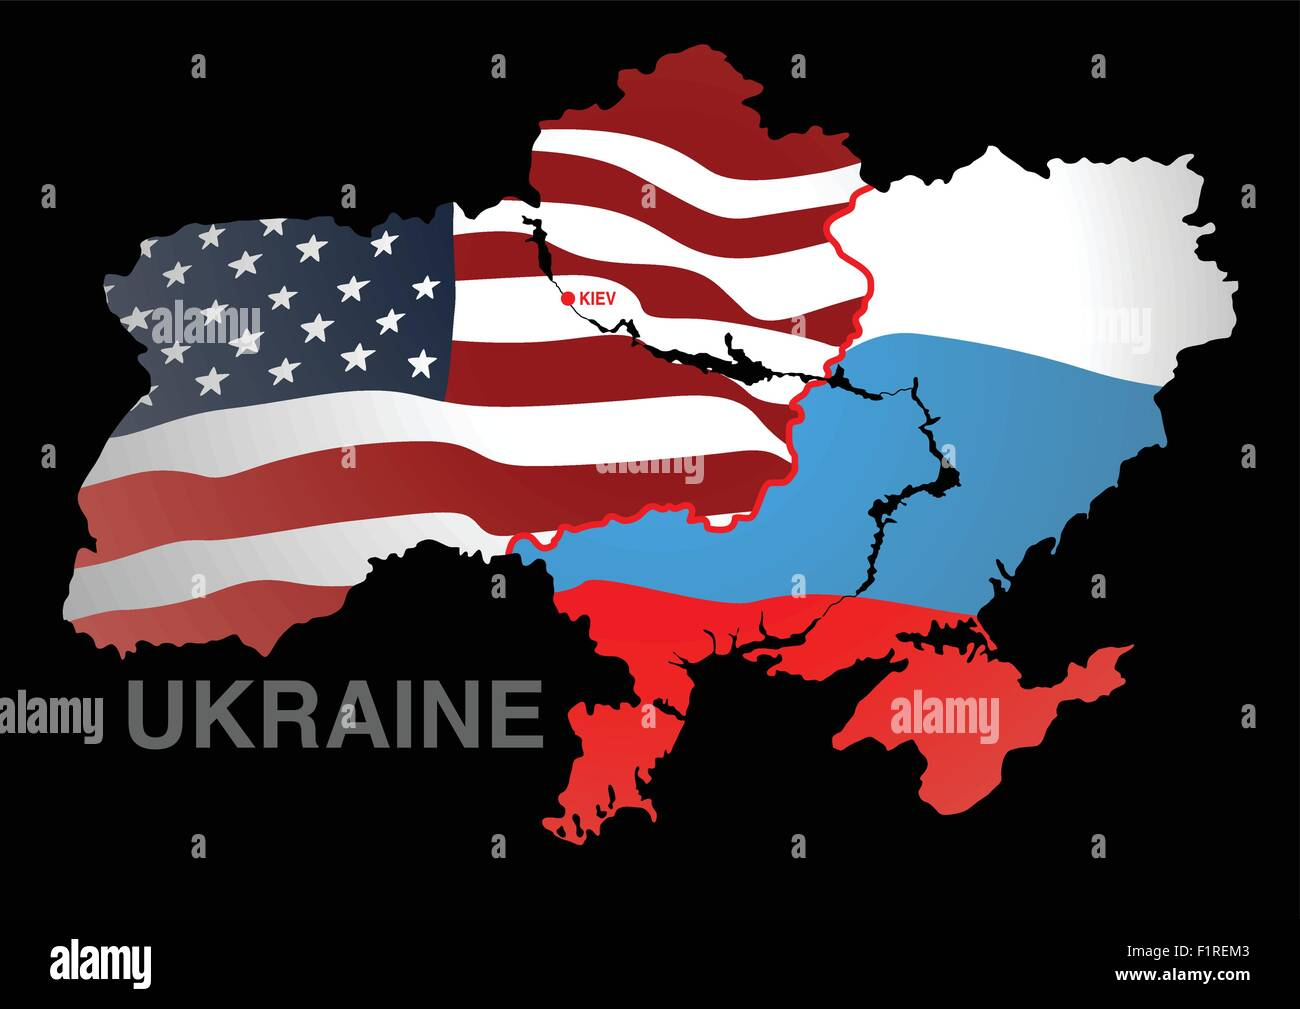 Usa And Russia Map.Ukraine Map Usa V Russia Stock Vector Art Illustration Vector